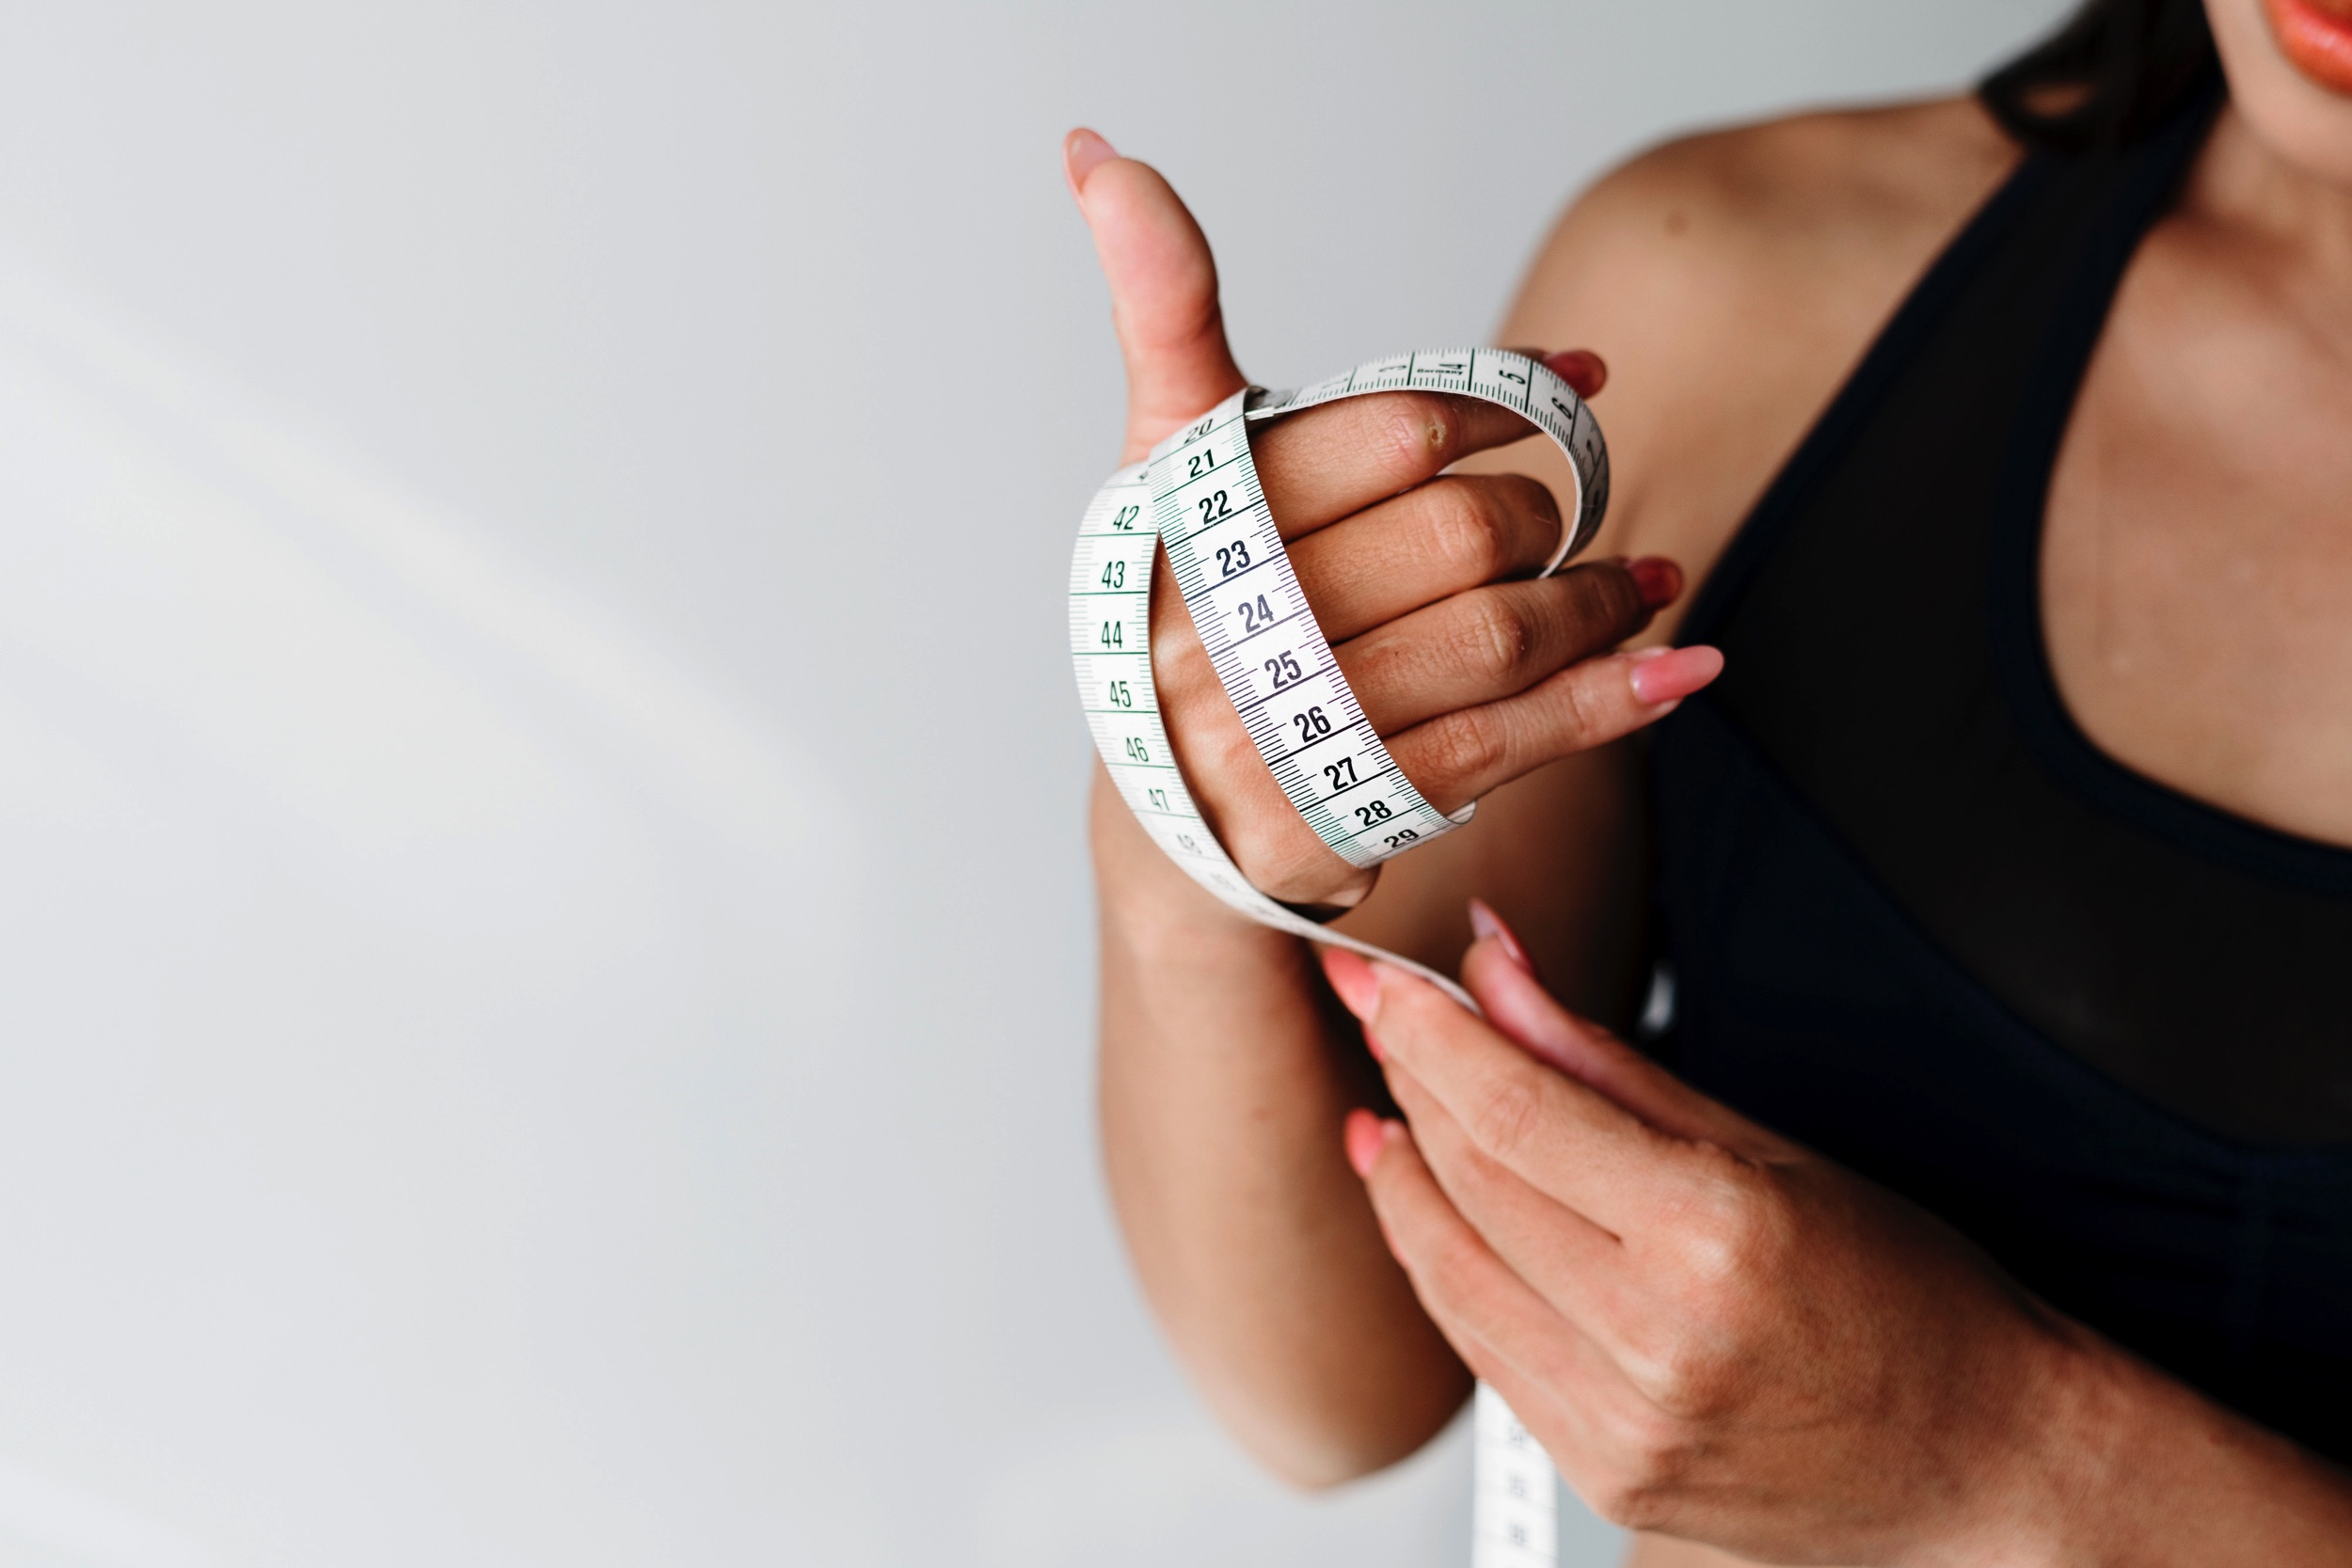 The Top Weight Loss Diets